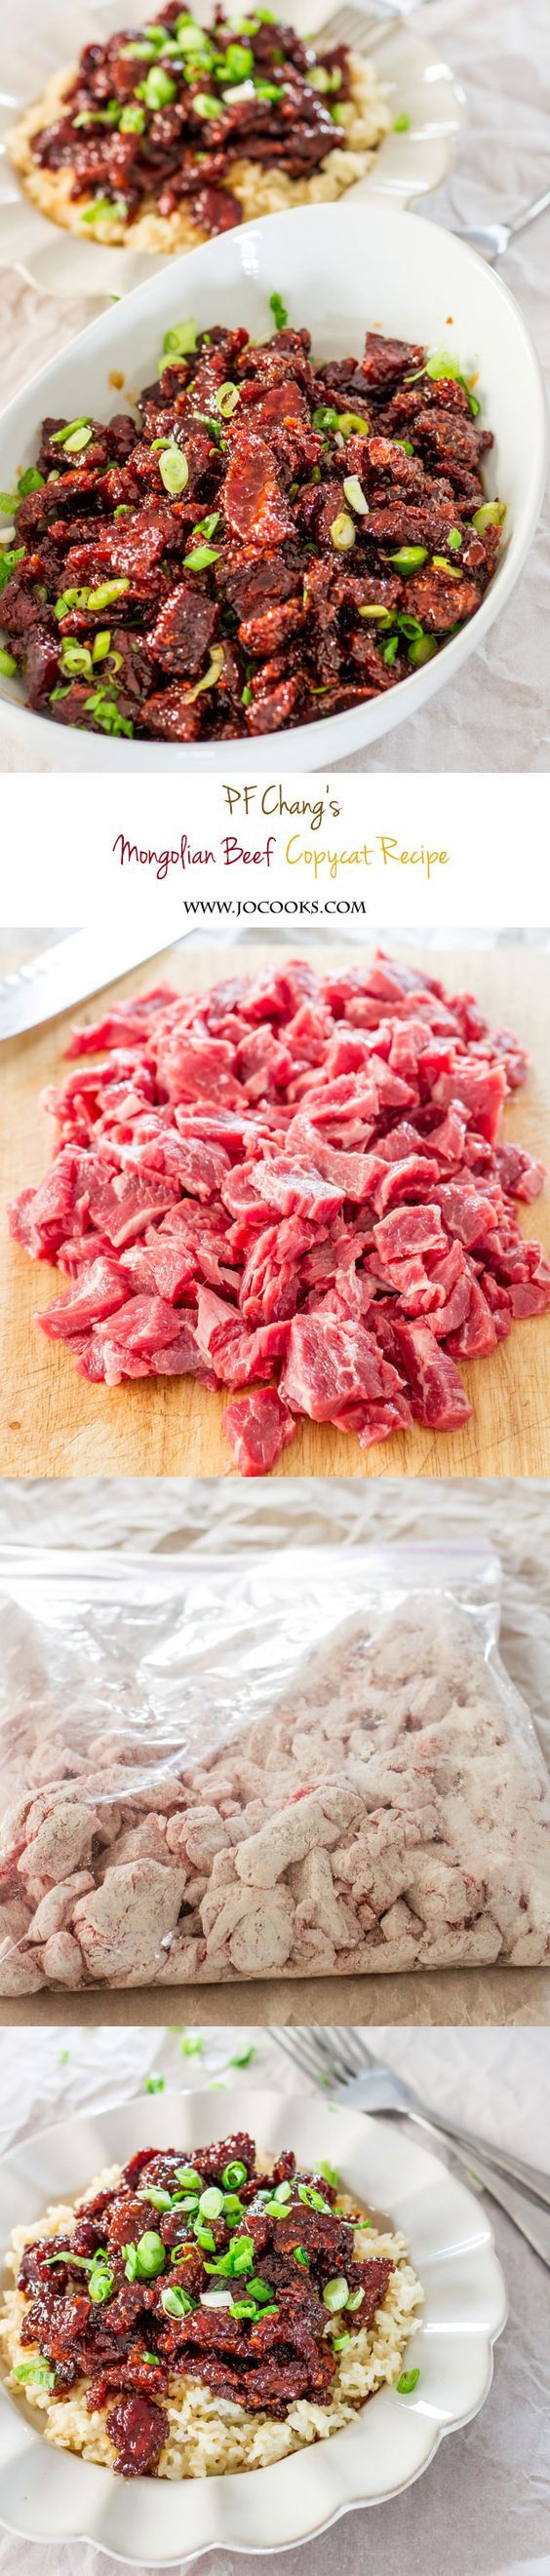 PF Chang's Mongolian Beef Copycat Recipe - soy sauce contains gluten so make sure you buy and use gluten free soy sauce!